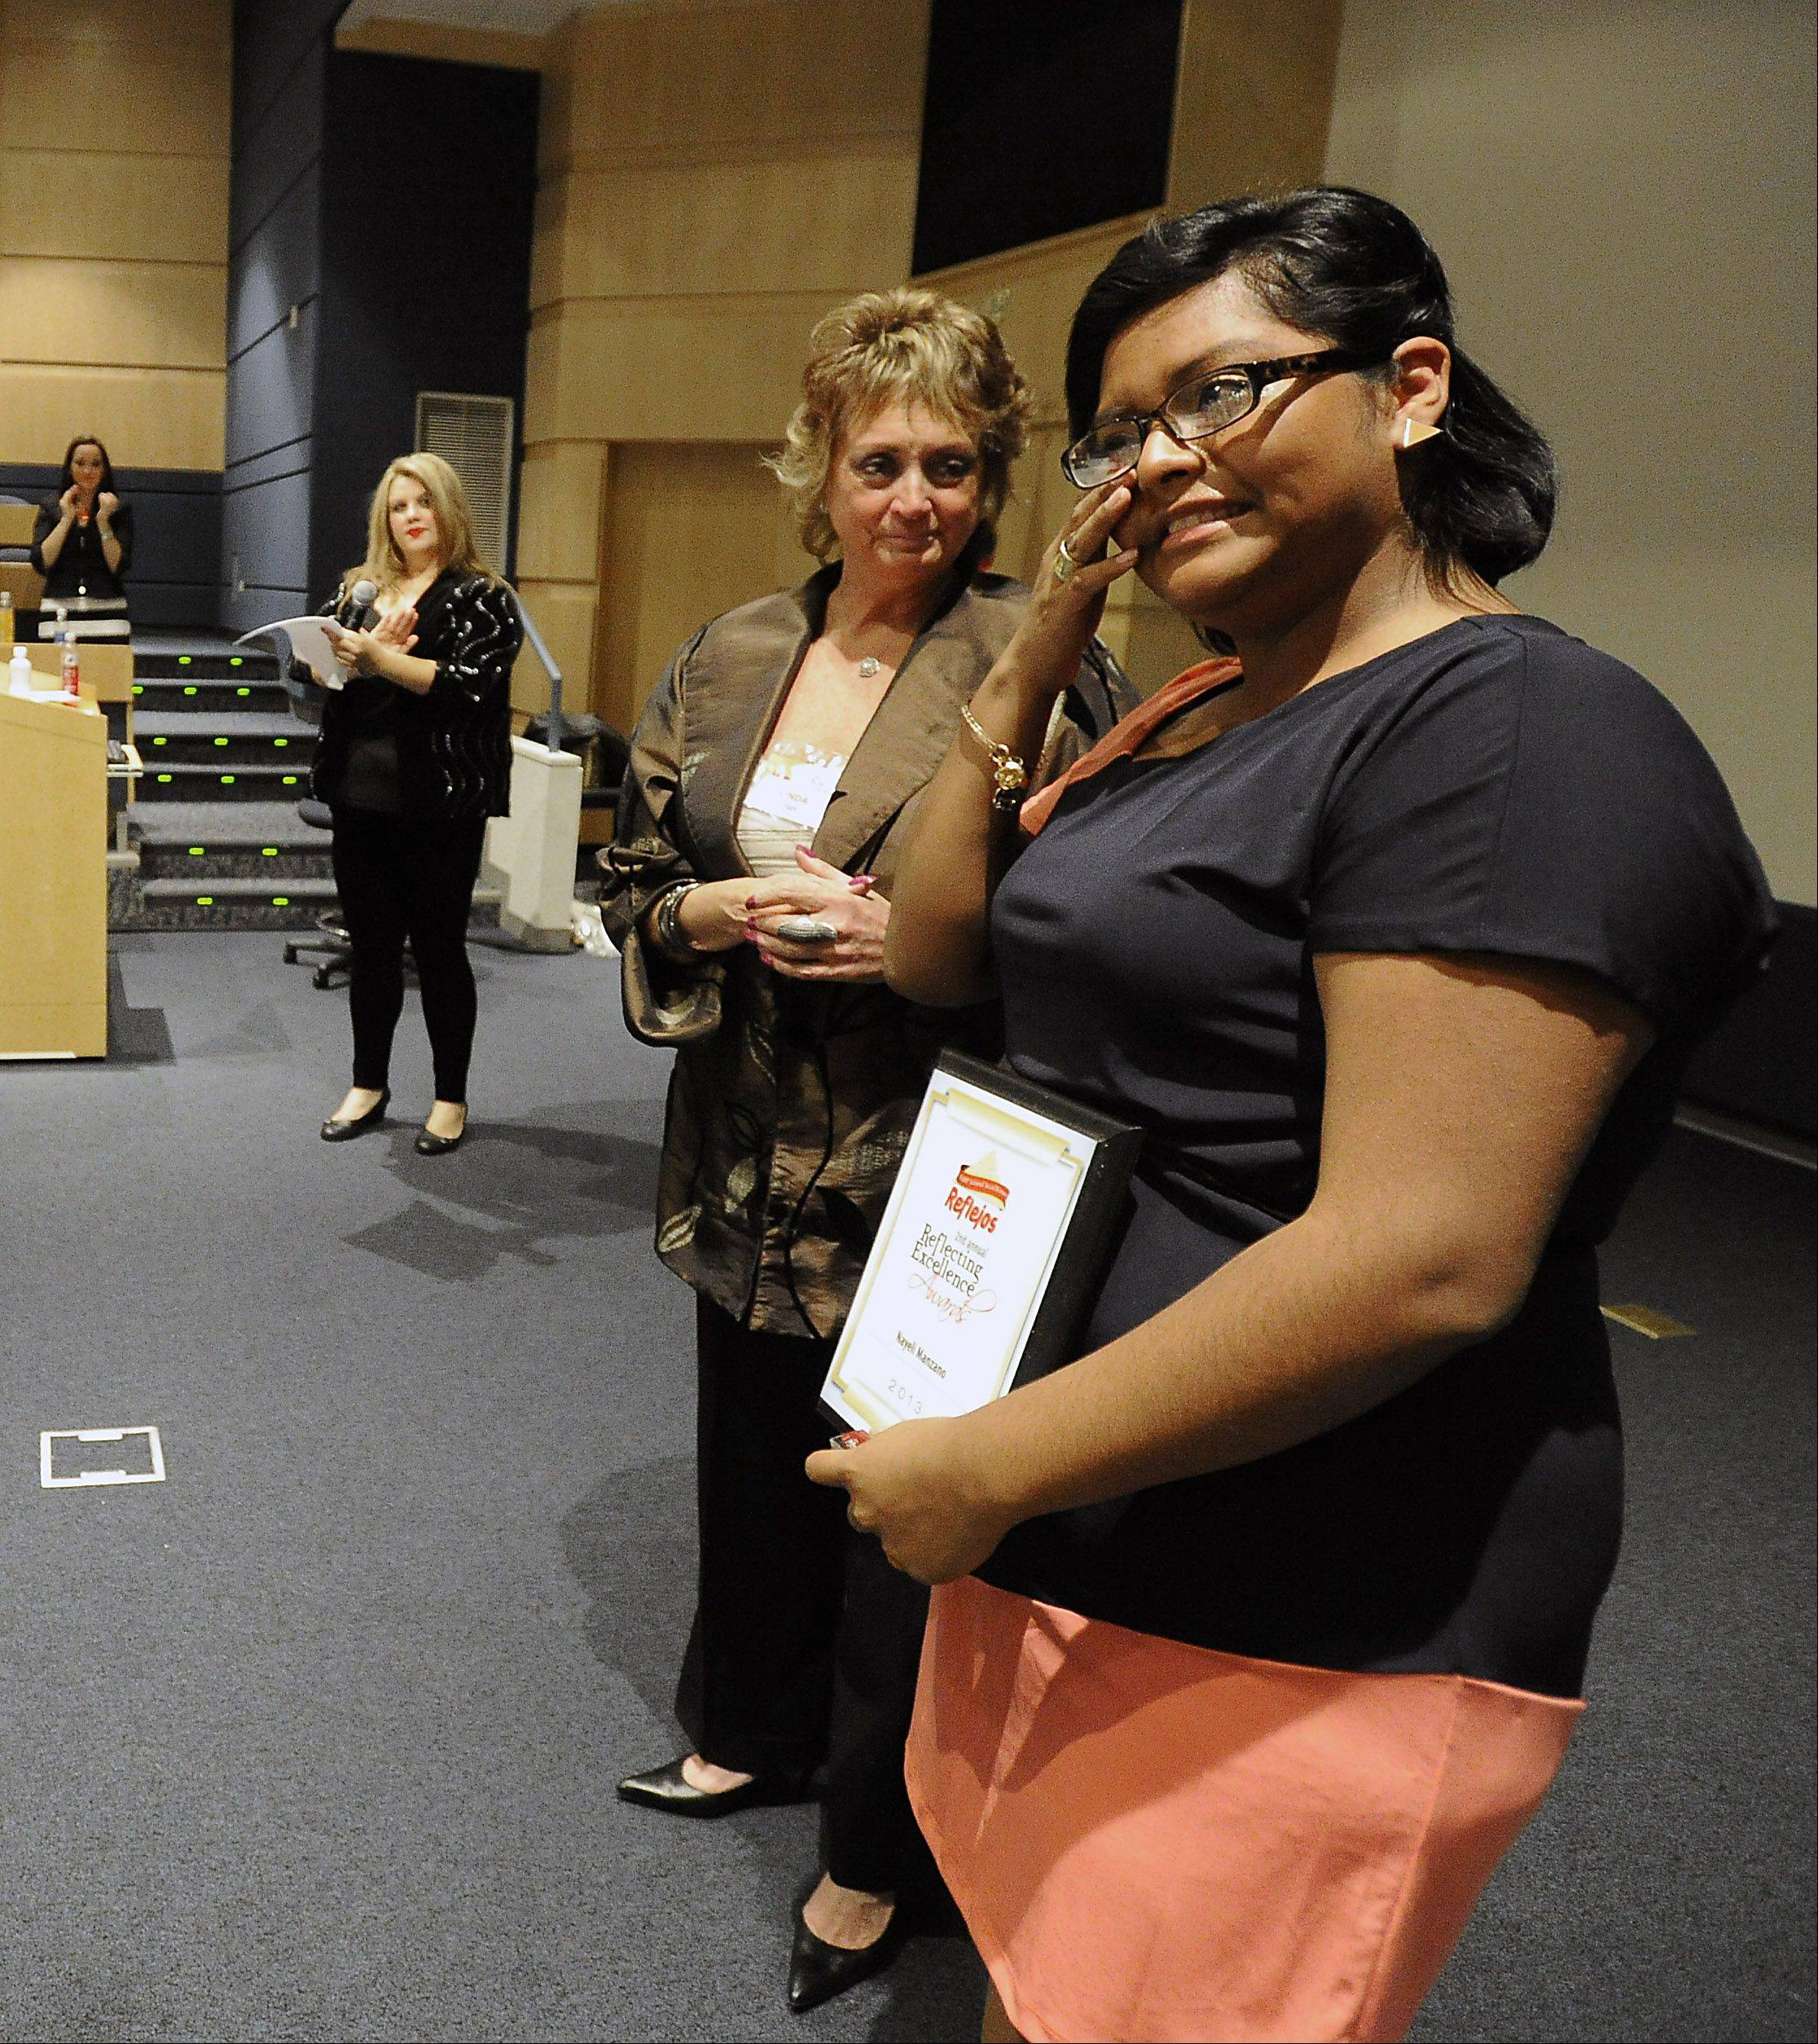 Linda Siete, sales operation manager at Reflejos, presents Nayeli Manzano from Bartlett High School with an award as she wipes away a tear at the Daily Herald Reflejos Reflecting Excellence Awards event at Harper College on Thursday.